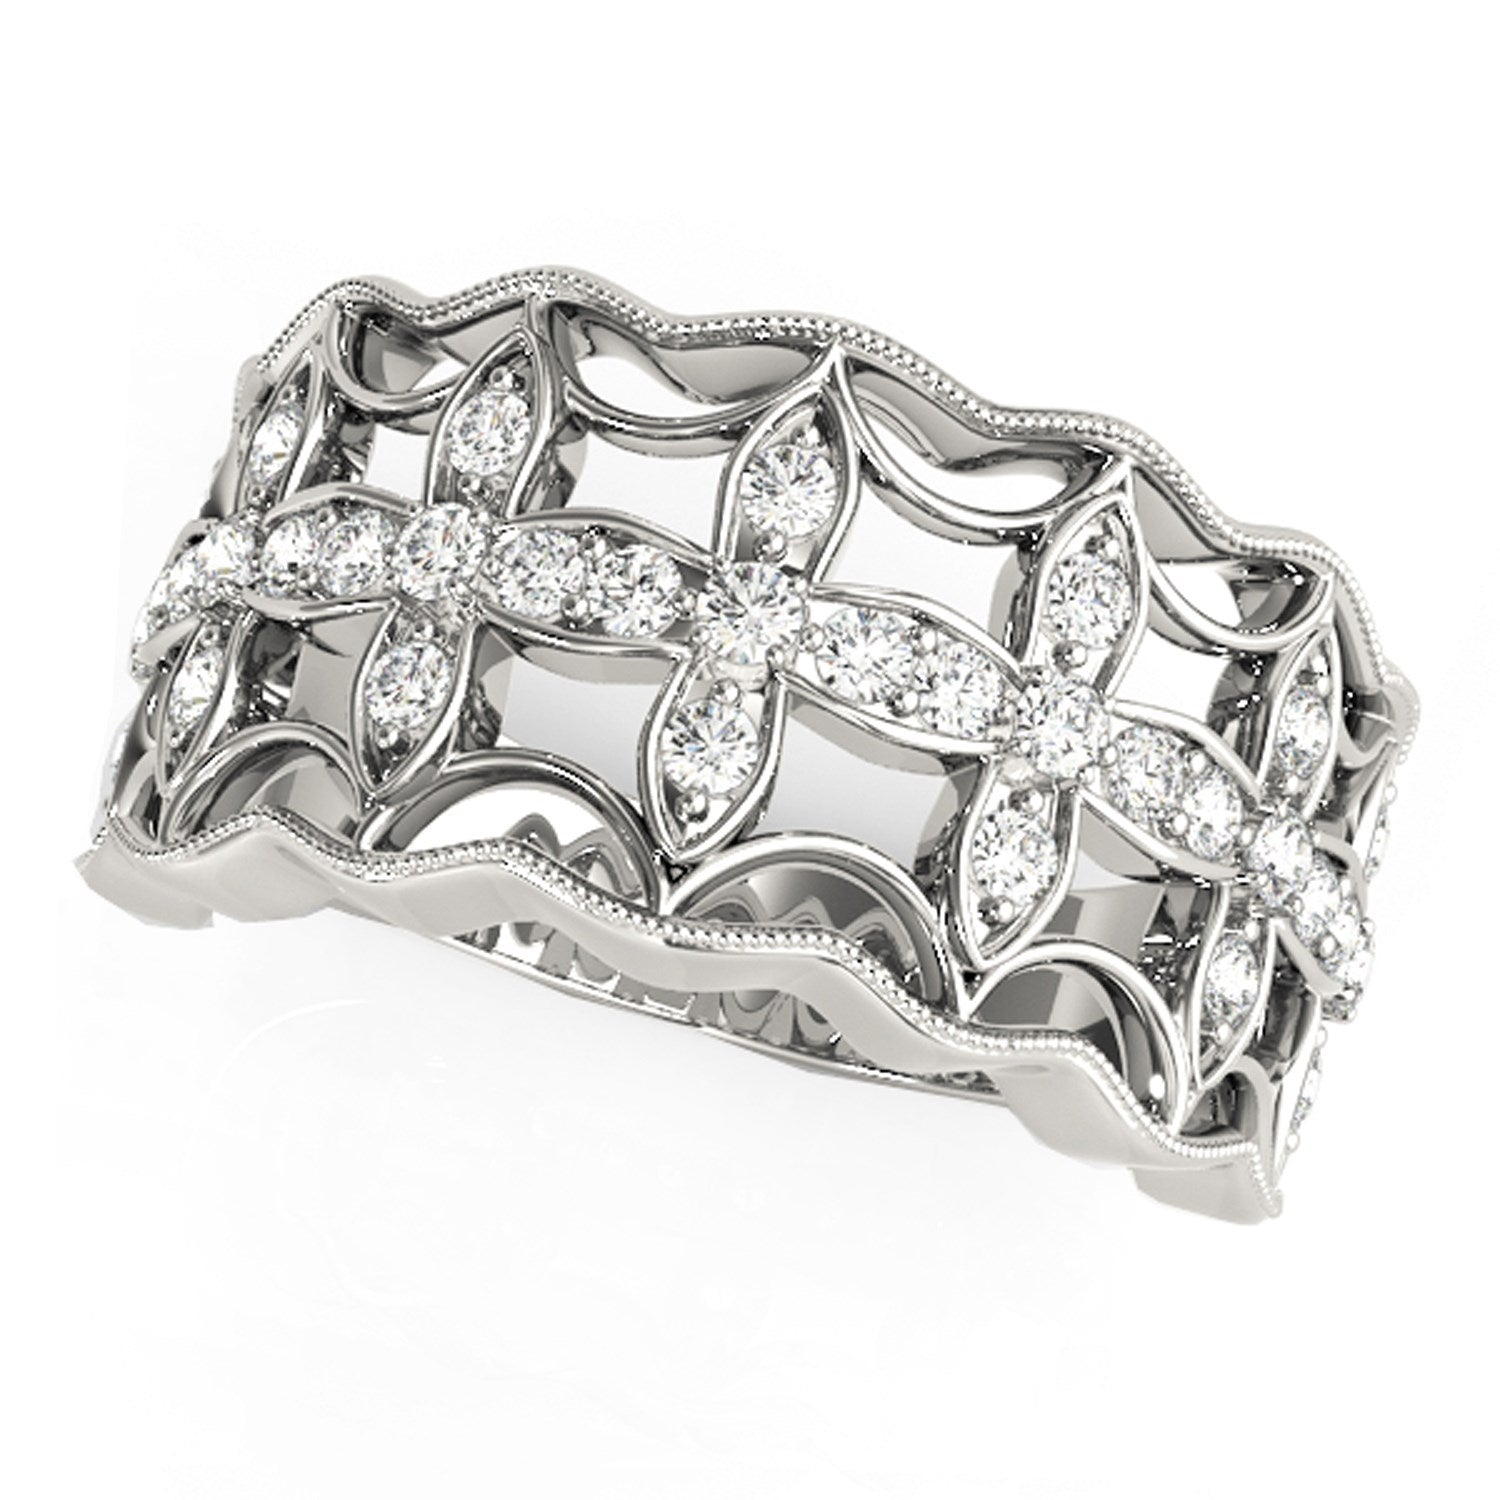 Diamond Studded Four Leaf Clover Motif Ring in 14k White Gold